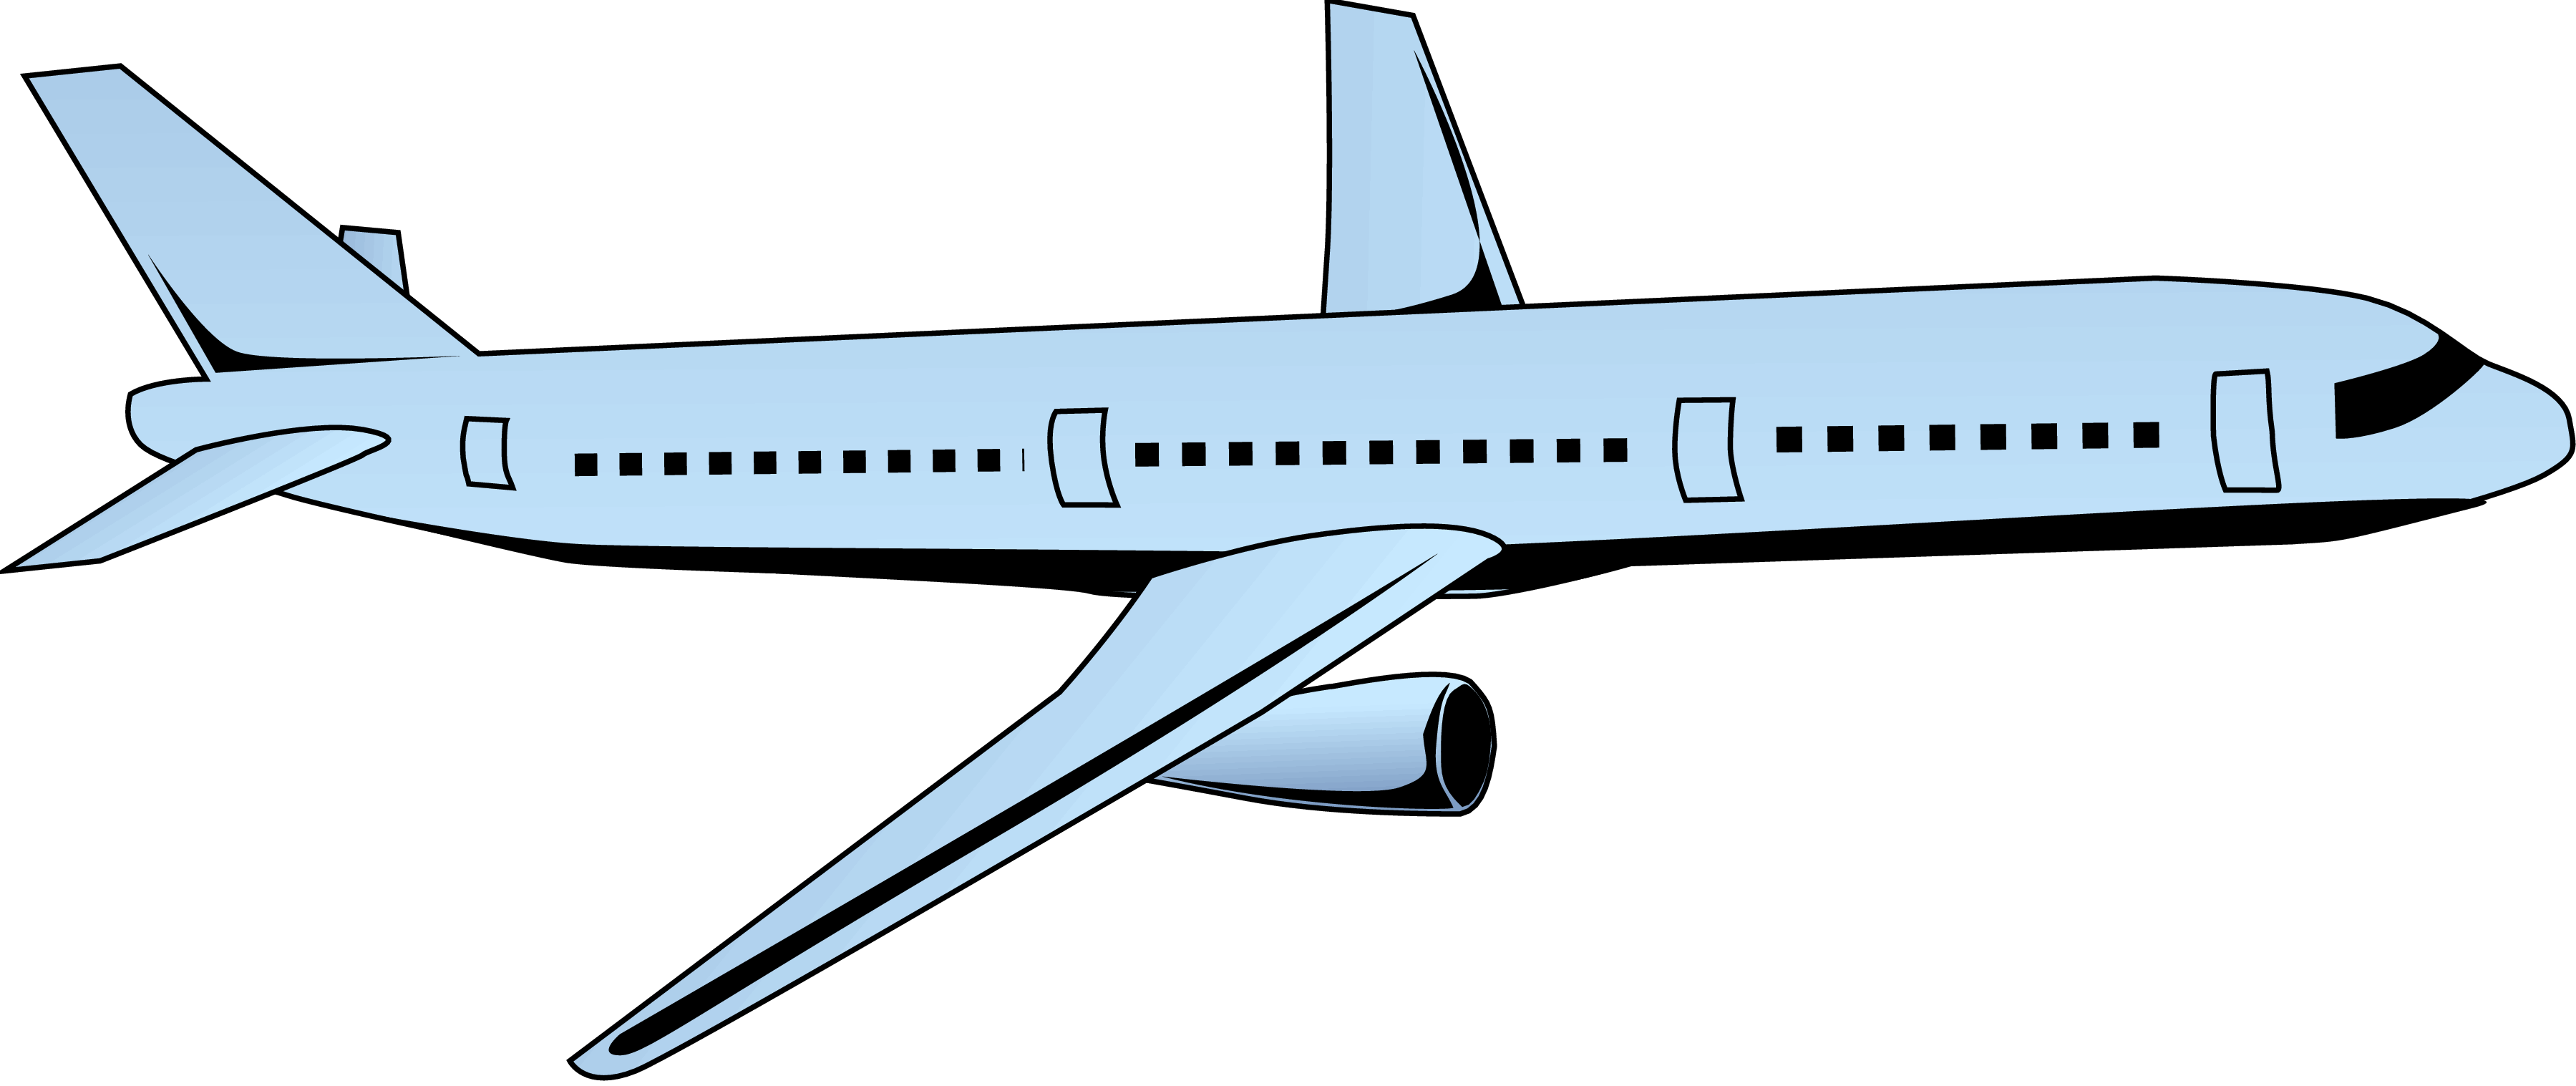 Free Airplane Cartoon Png, Download Free Clip Art, Free Clip.